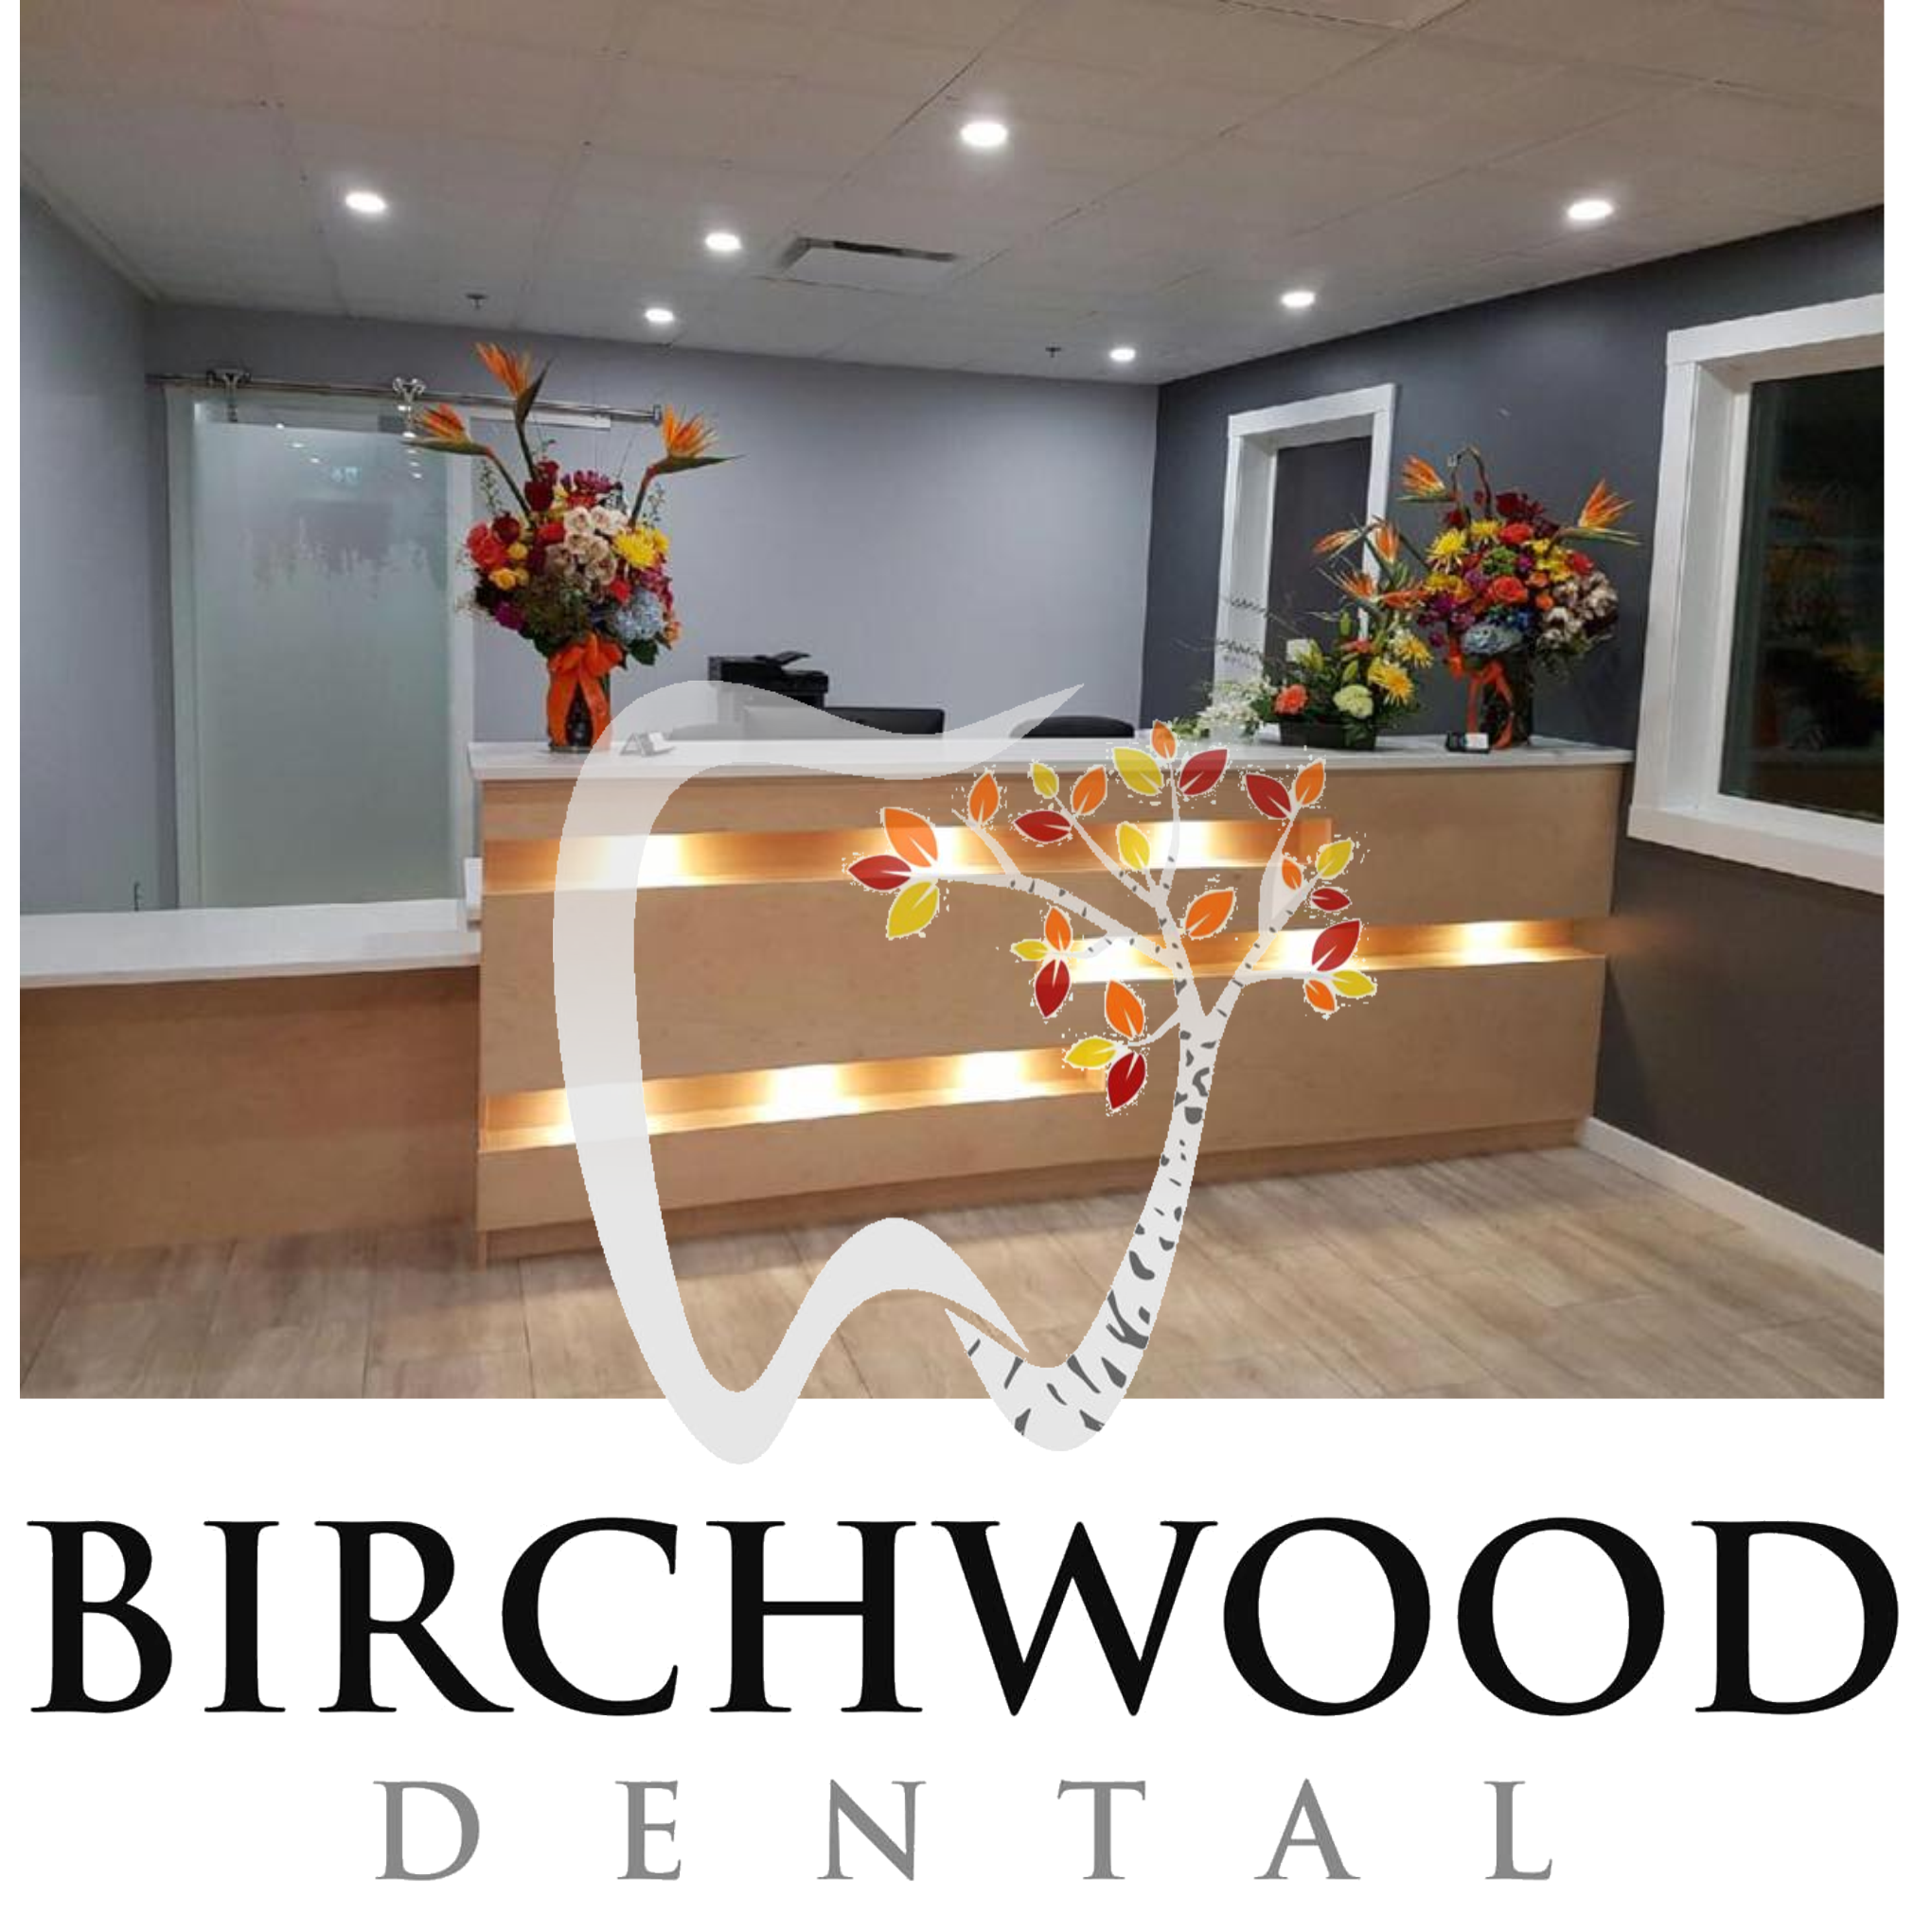 take the tour of Birchwood Dental, Yellowknife's newest dental clinic!